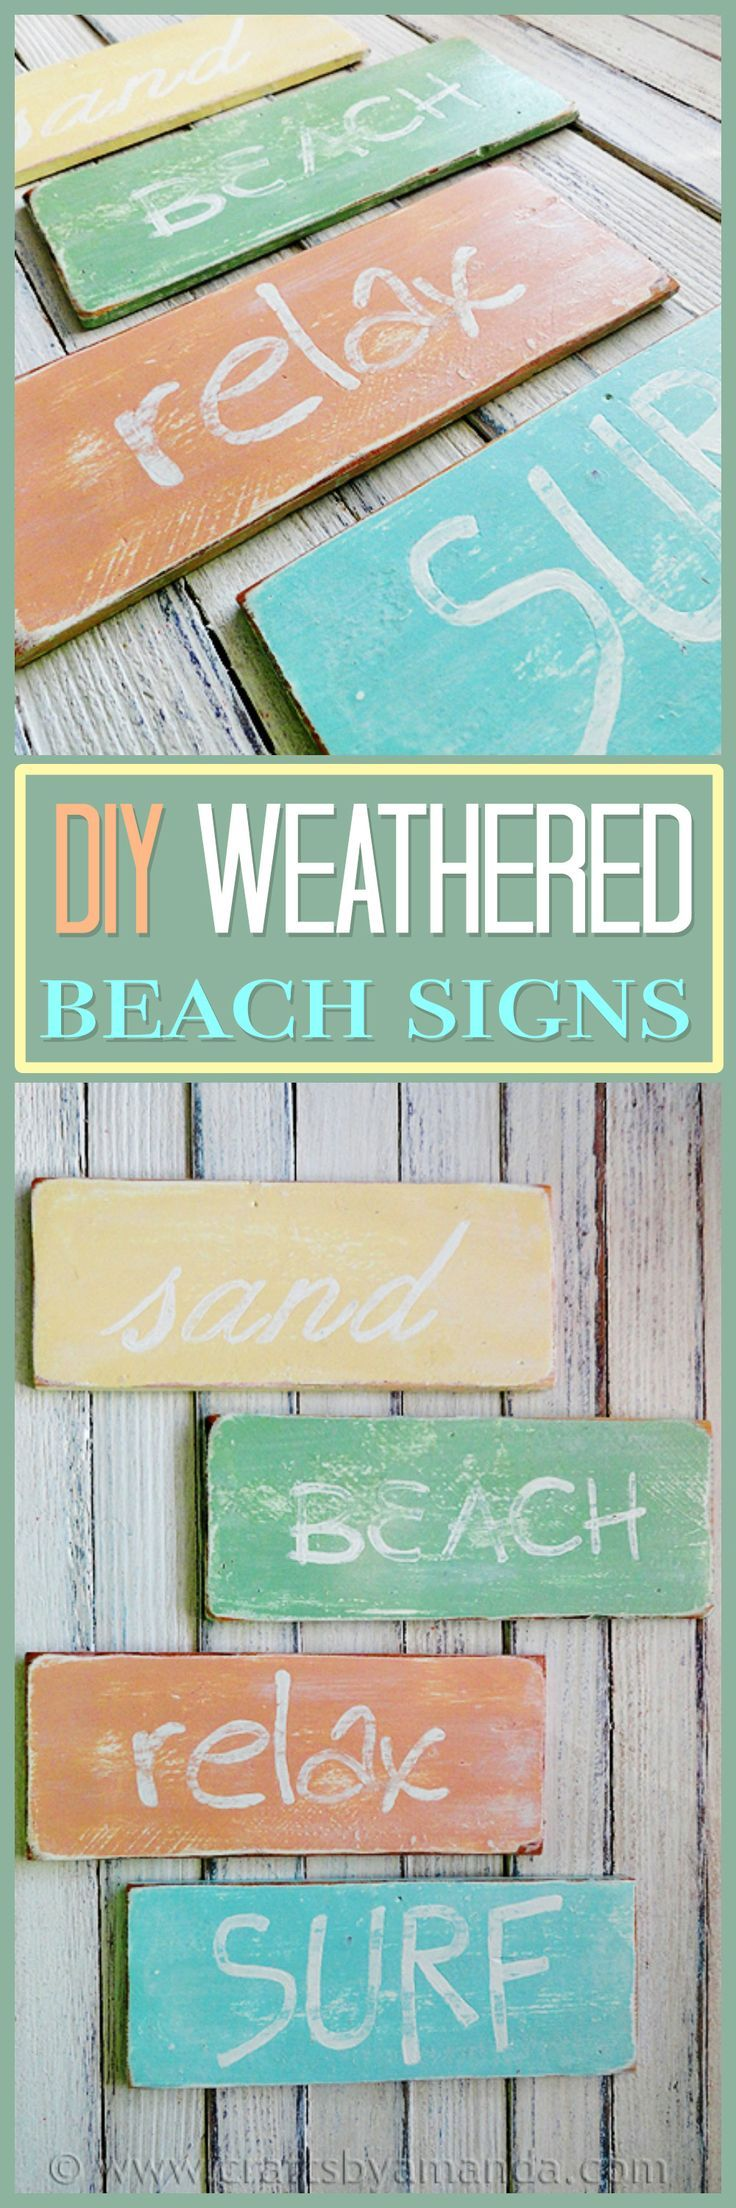 Bring a little of that beach feeling into your home by making some rustic looking beach signs! Ideal for bathroom decor or any part of your home that boasts that beautiful coastal decor look!